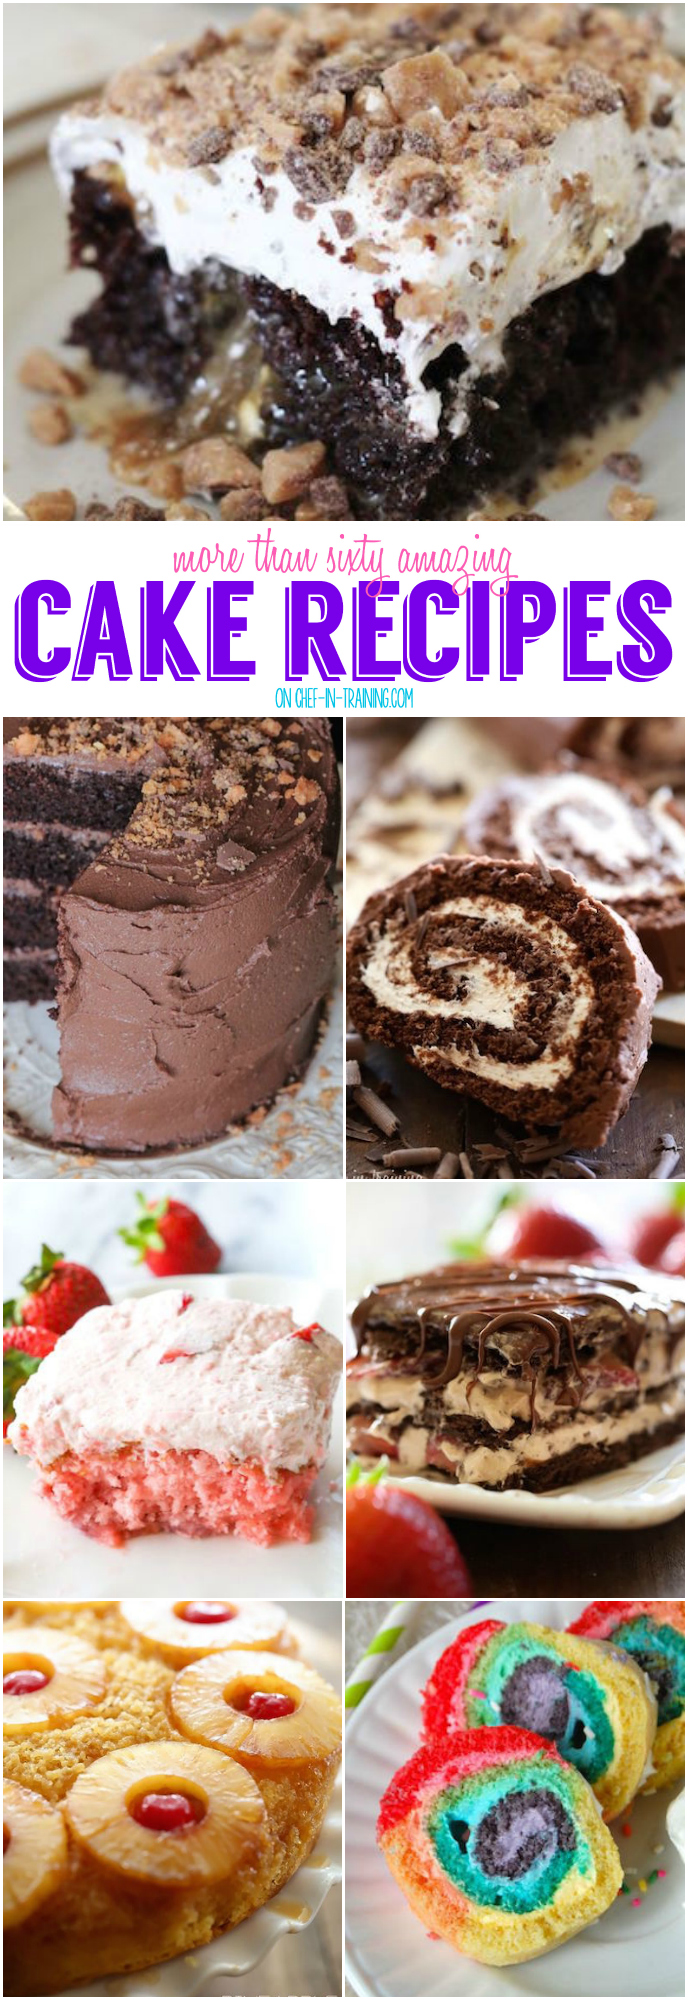 Recipes for amazing cakes